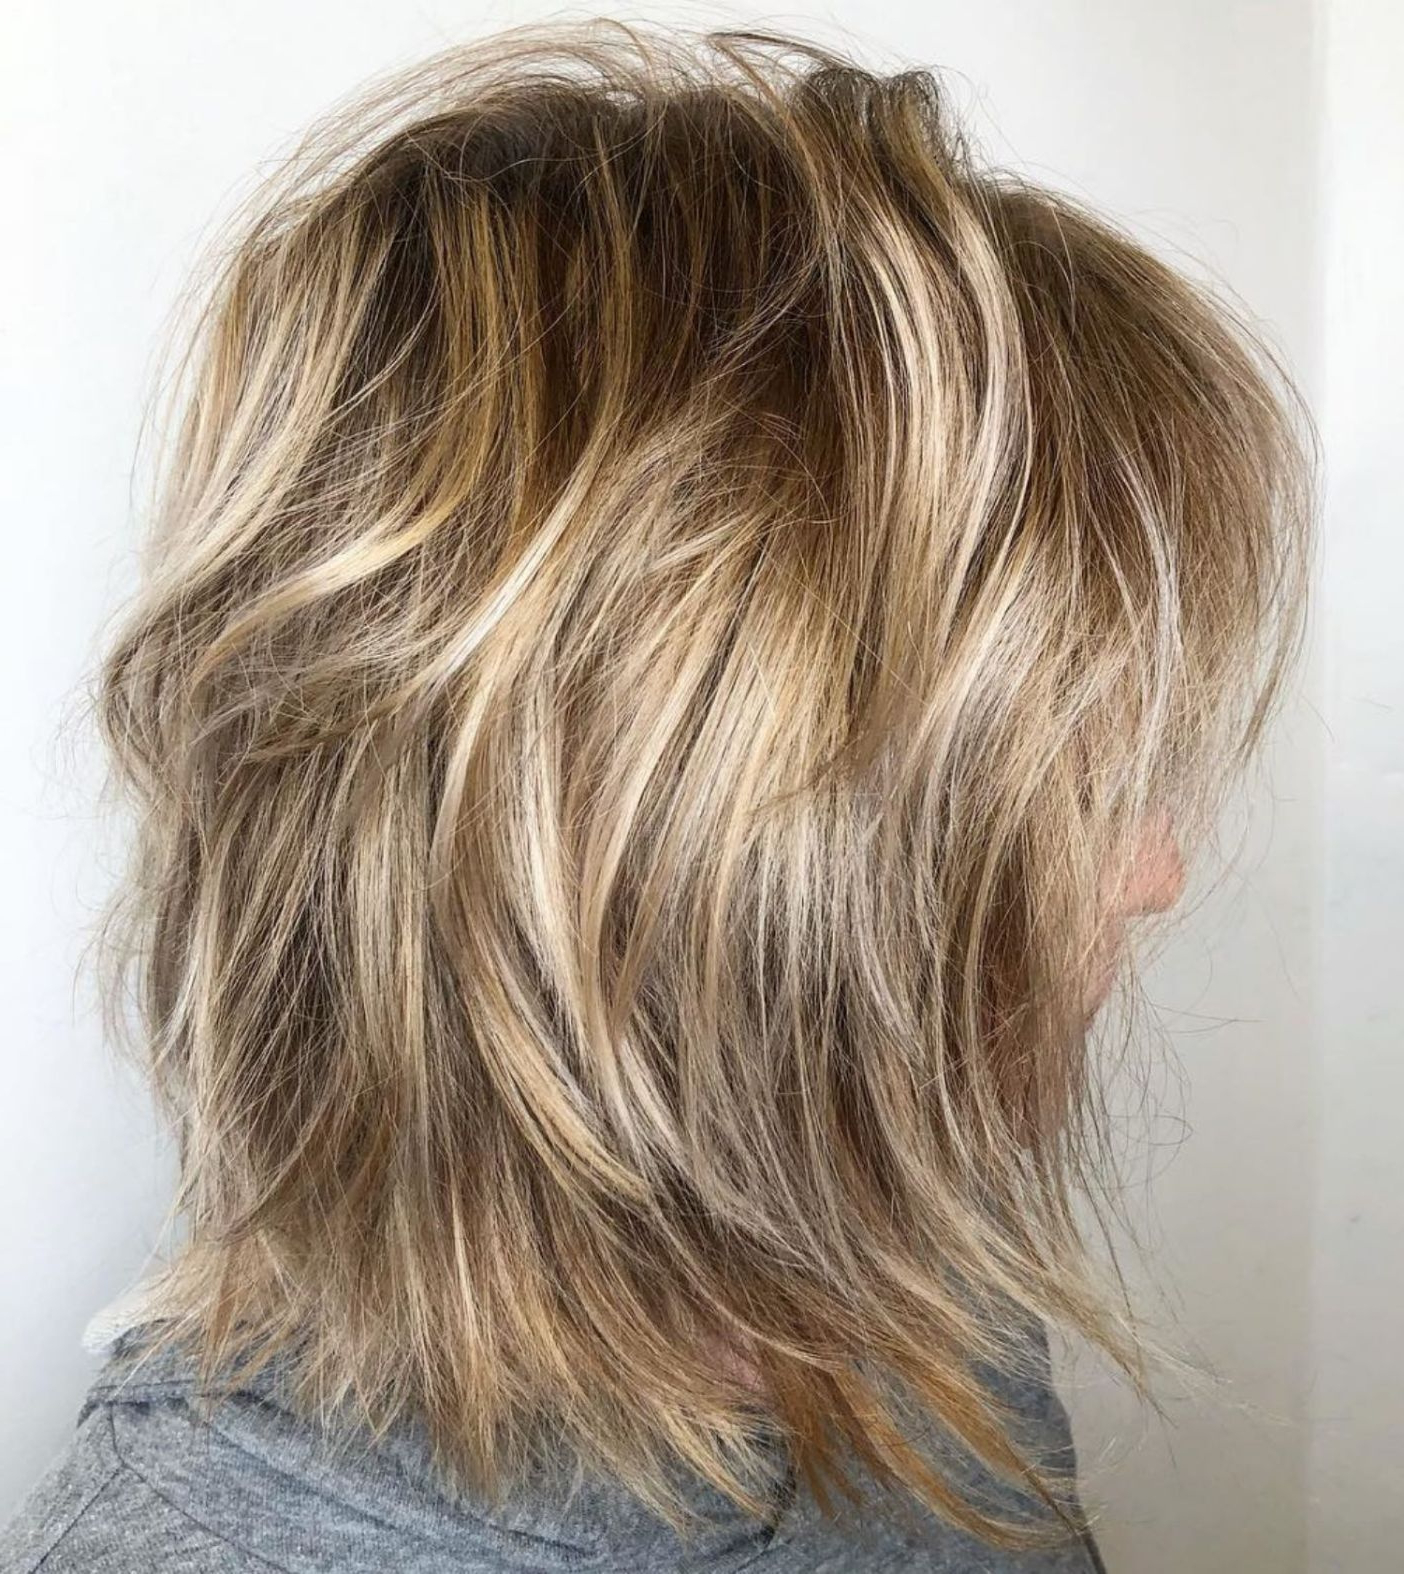 Hairstyles : Shaggy Blonde Bob With Highlights Superb 70 Throughout Well Known Blonde Highlights Shaggy Haircuts (View 8 of 20)